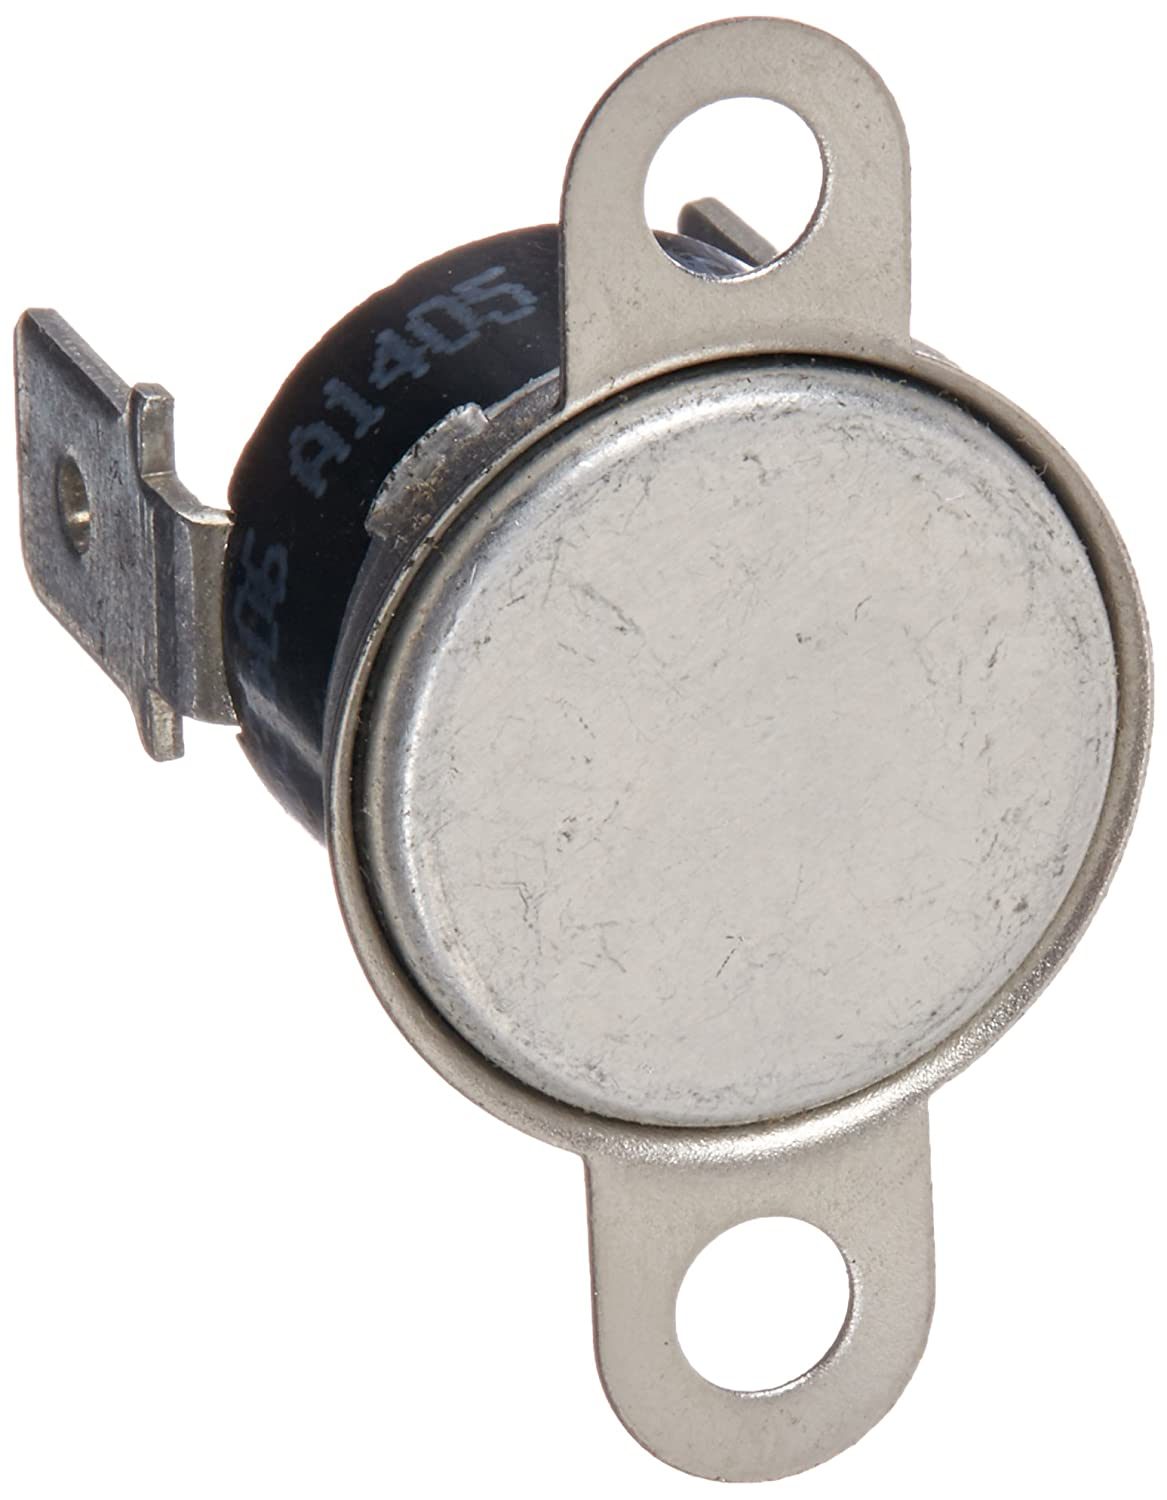 GENUINE Frigidaire 318003606 Range/Stove/Oven Cycling Thermostat